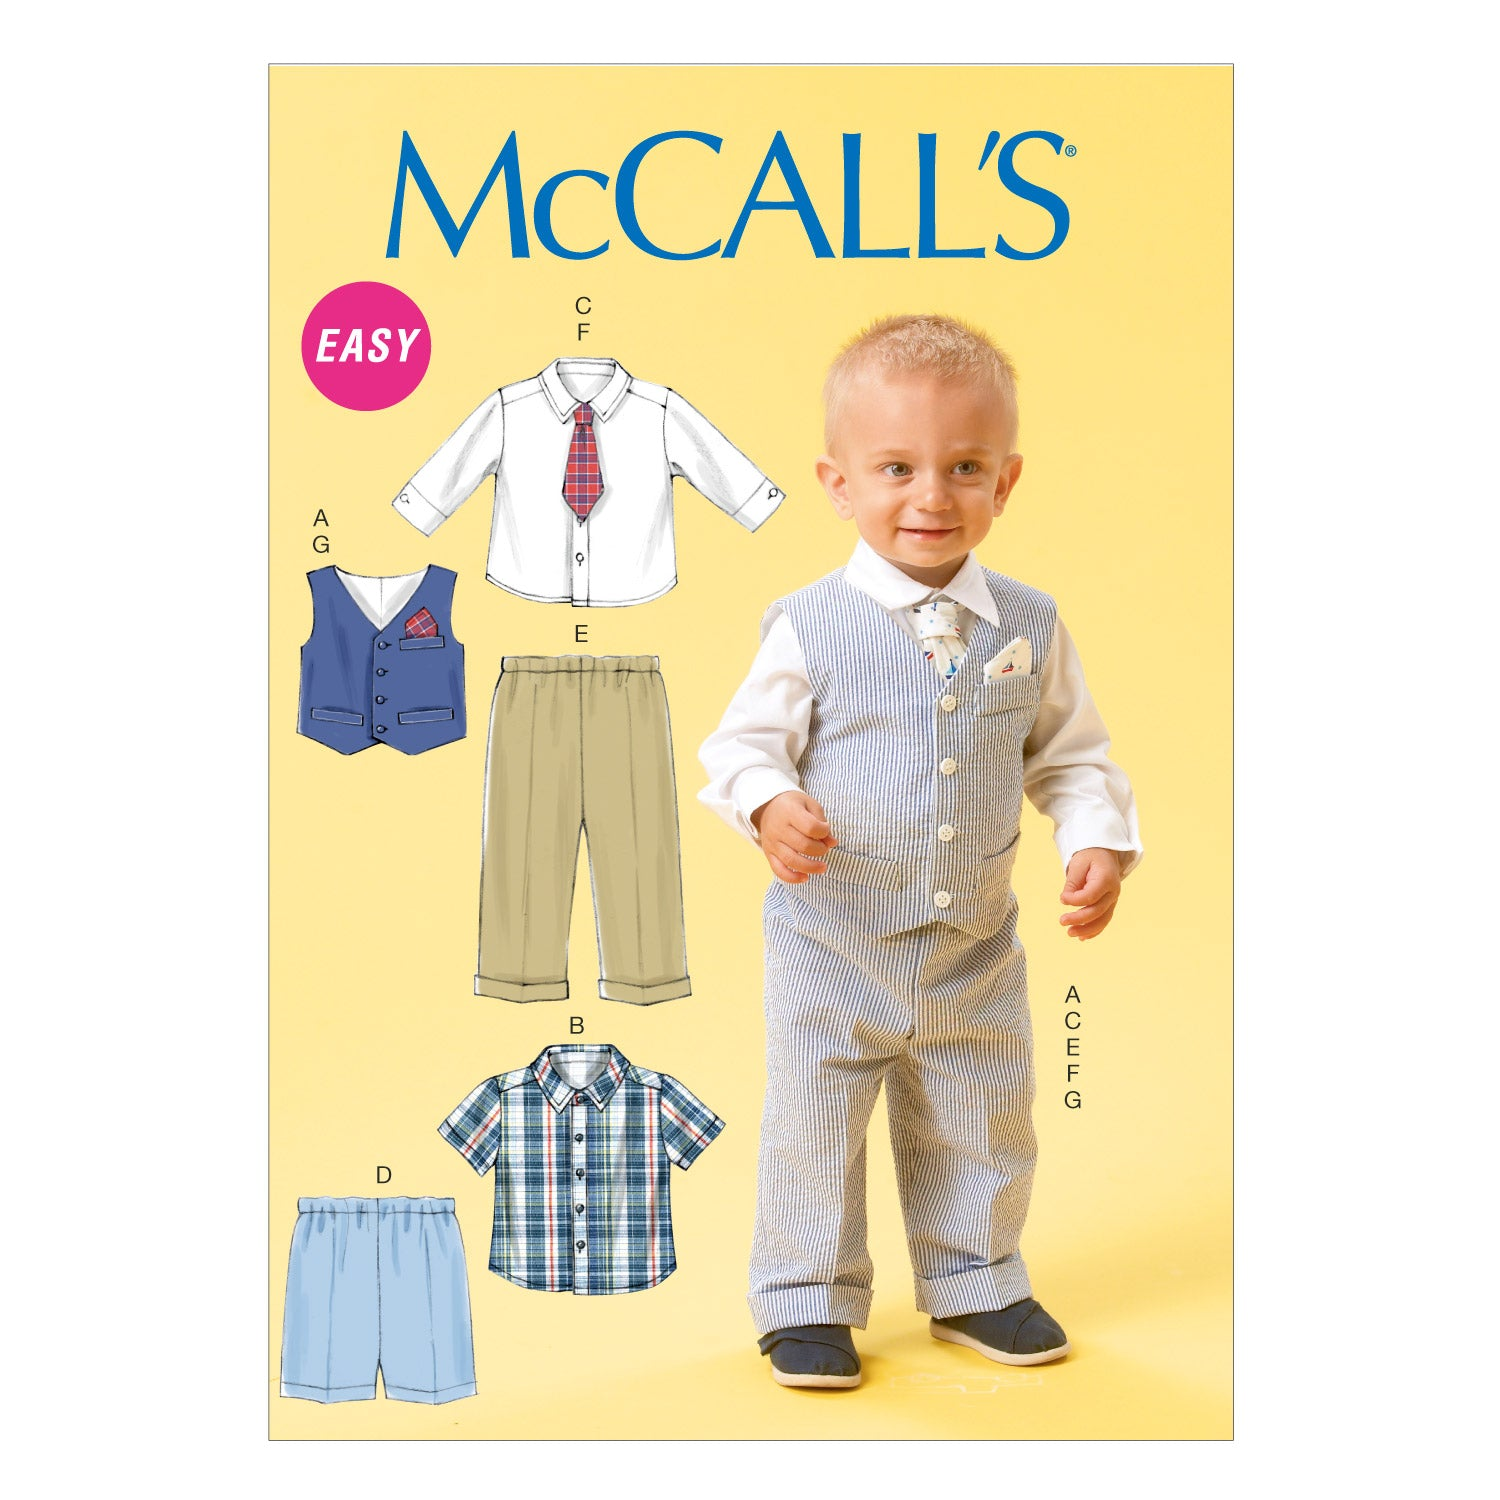 McCall's M6873YA5 Infants' Vest, Shirt, Shorts, Pants, Tie and Pocket Square All Sizes In One Envelope